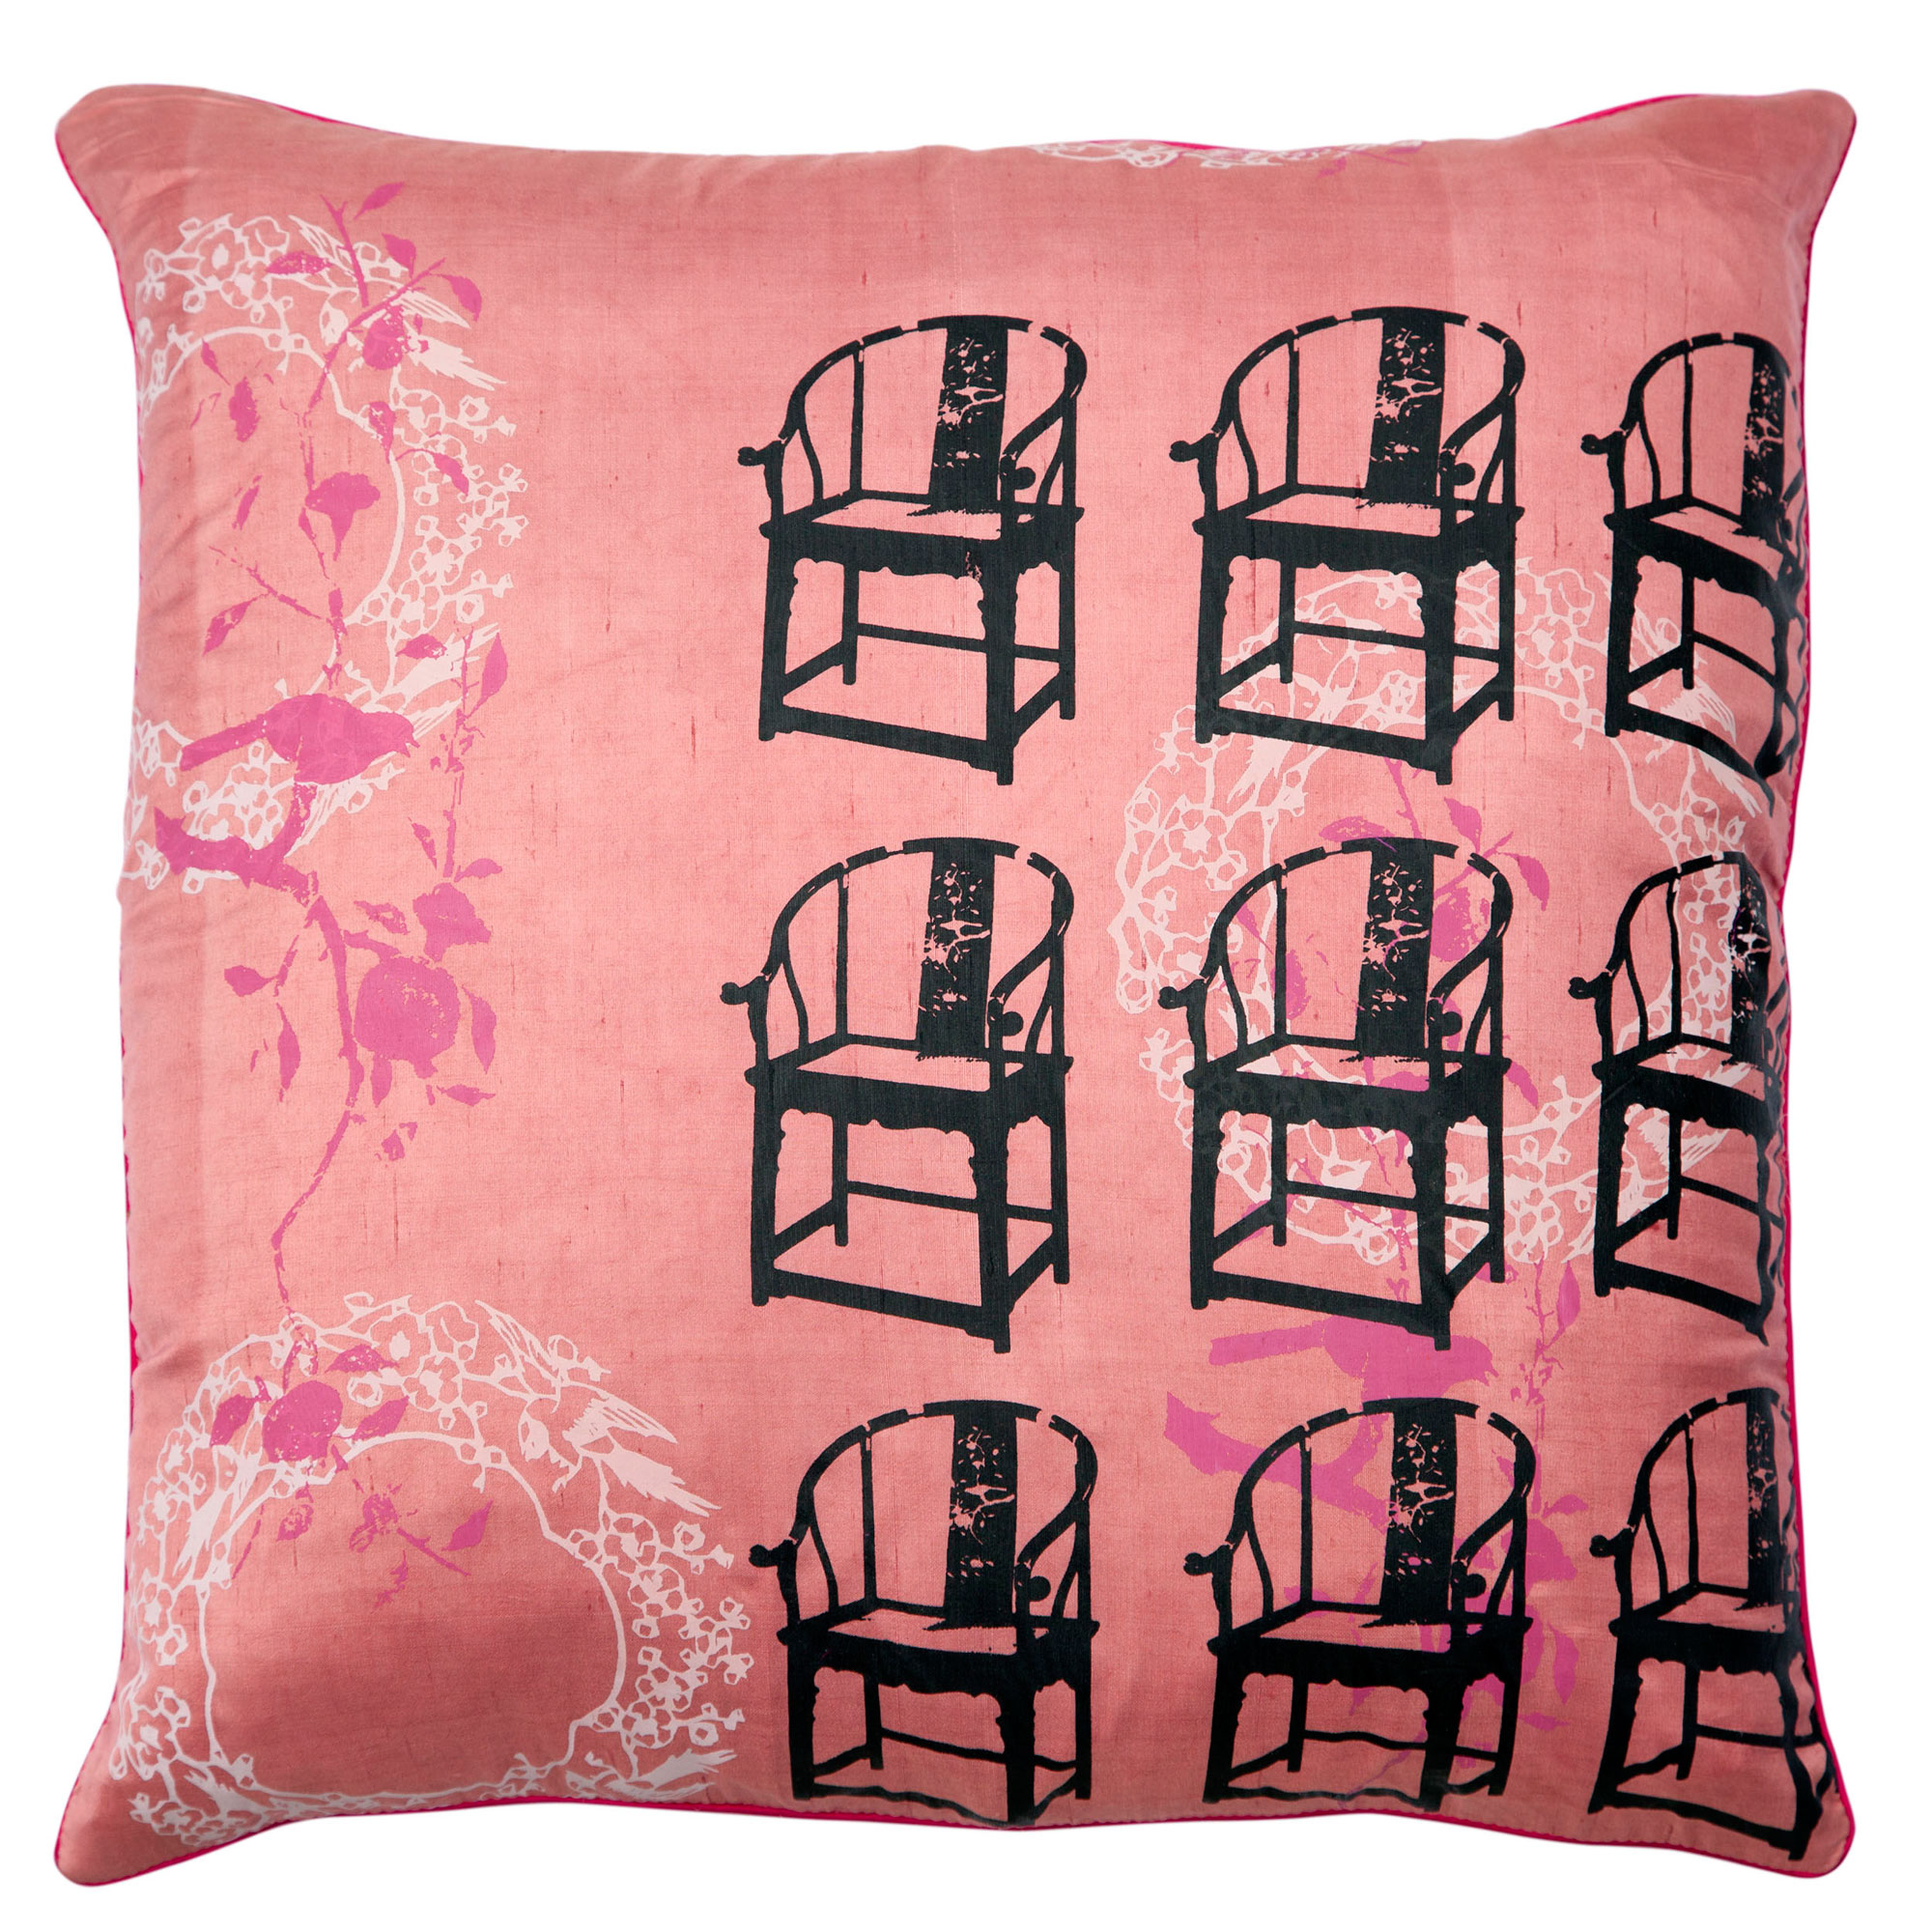 Grandma's Antique Chair Dusty Pink.jpg